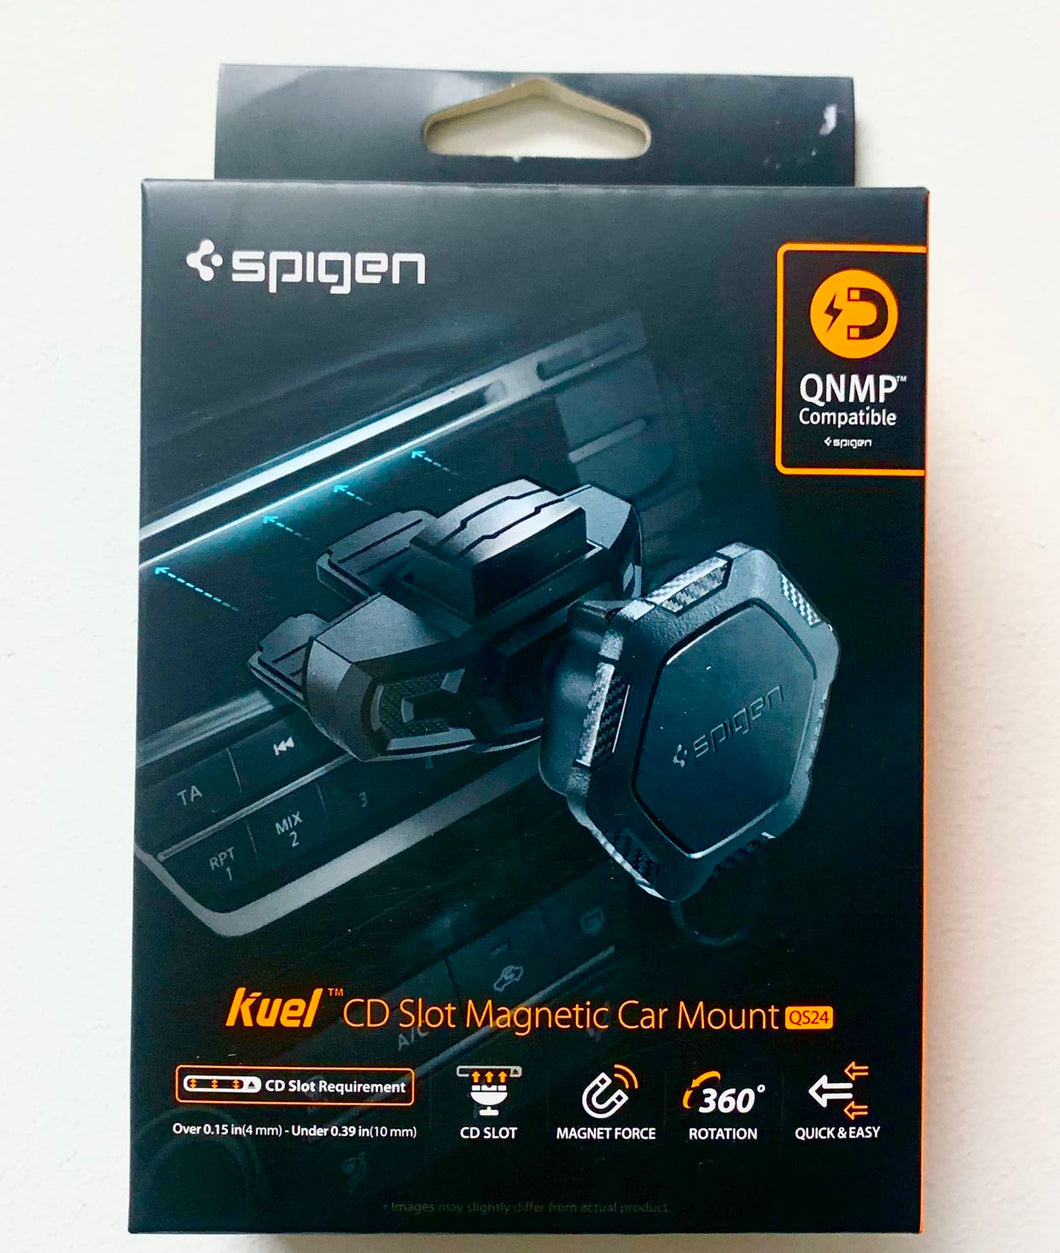 Spigen Kuel QS24 Magnetic CD Slot Car Mount